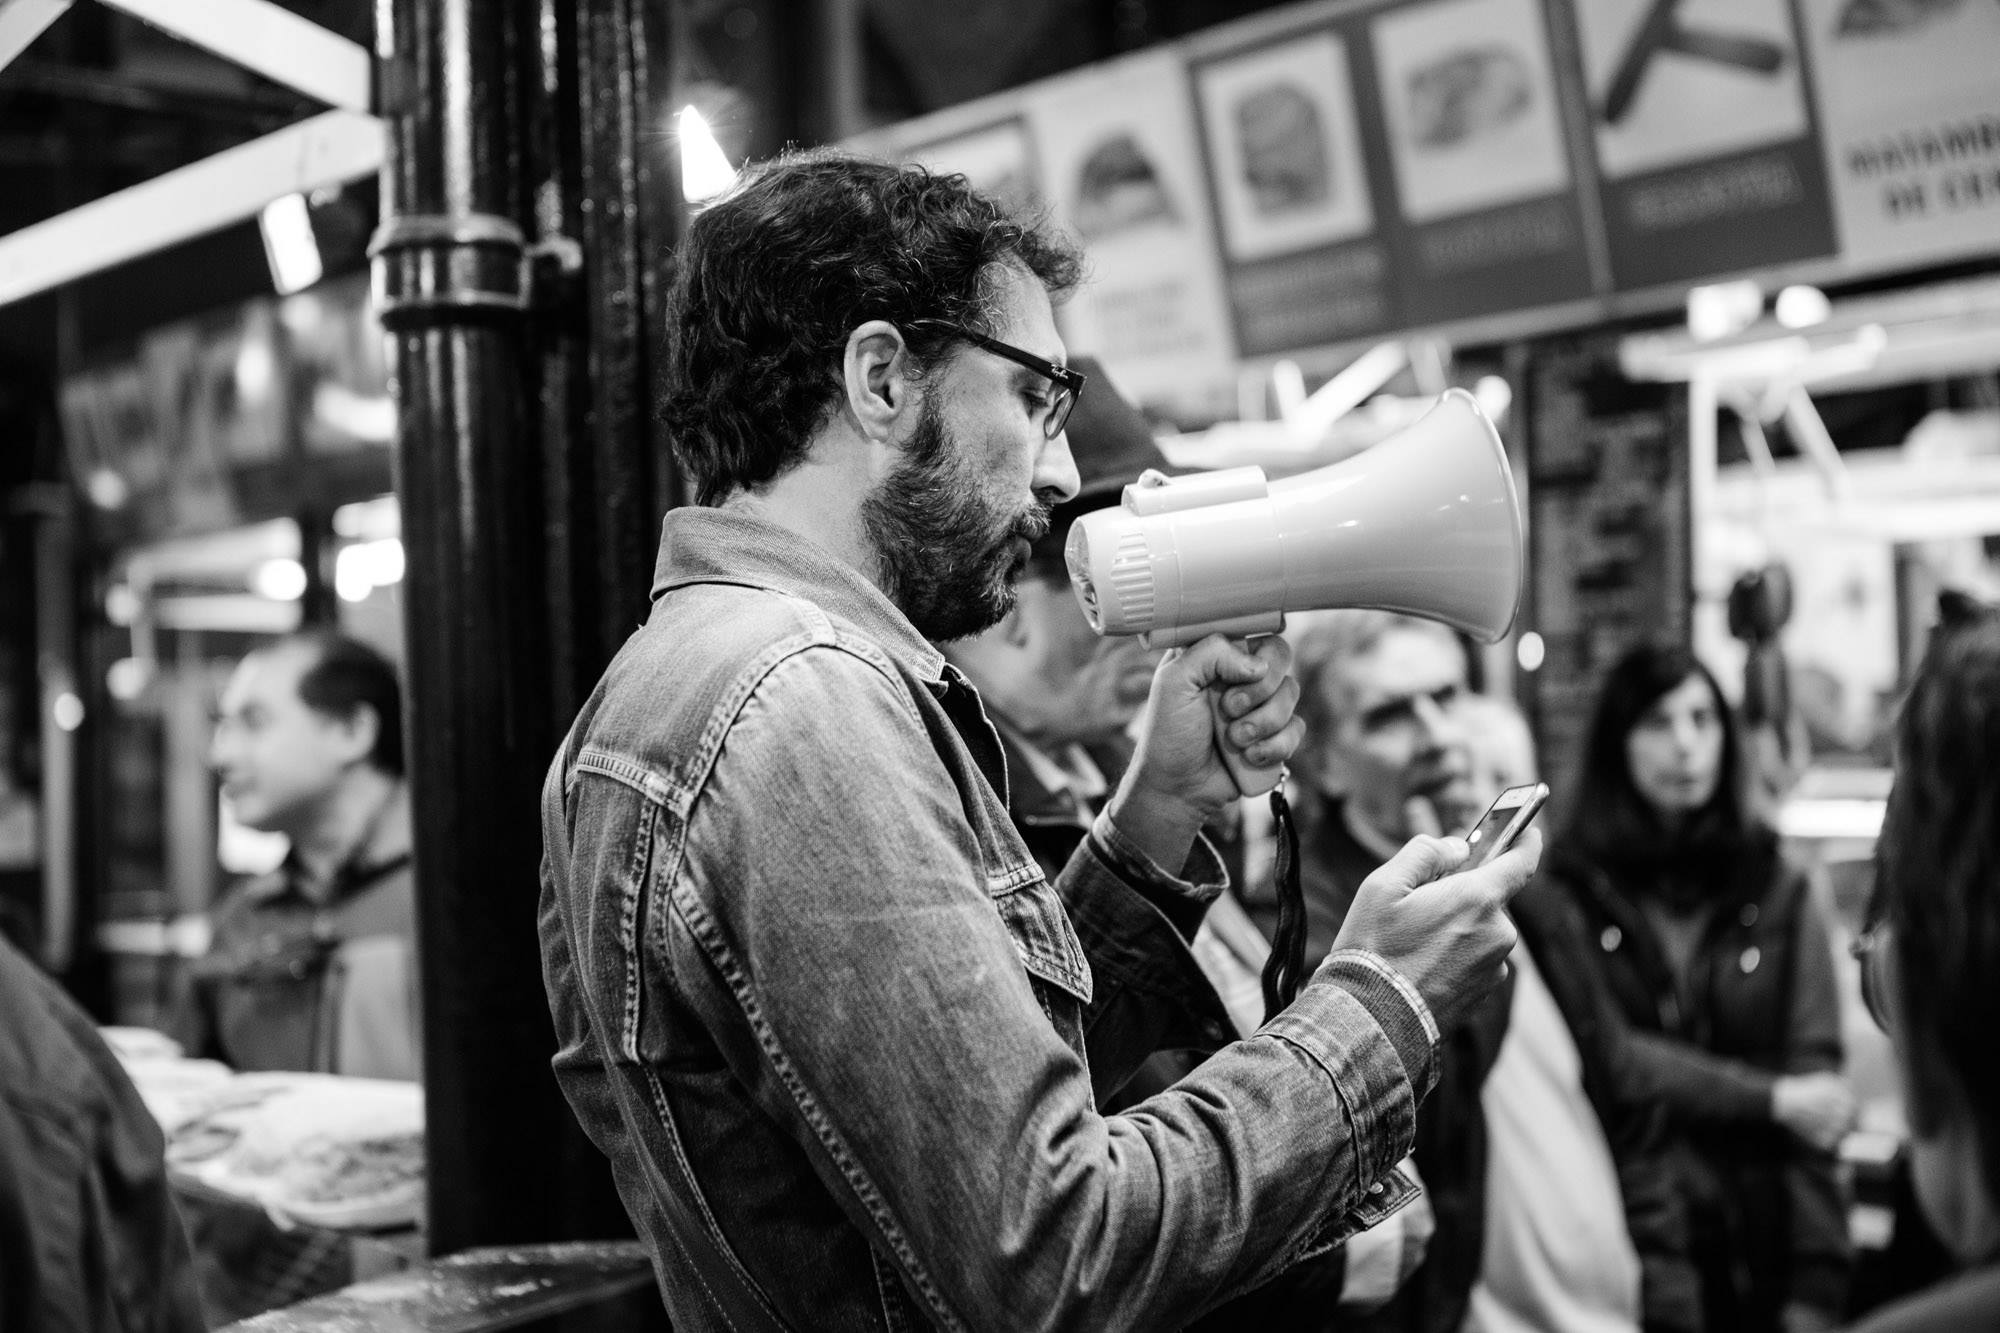 Poet Mariano Rolando Andrade reading aloud some of his verses in popular market Mercado del Progreso on the second day of the FIP International Festival of Poetry of Buenos Aires (June 14-18, 2017). Photo credit: Manuela Uribe